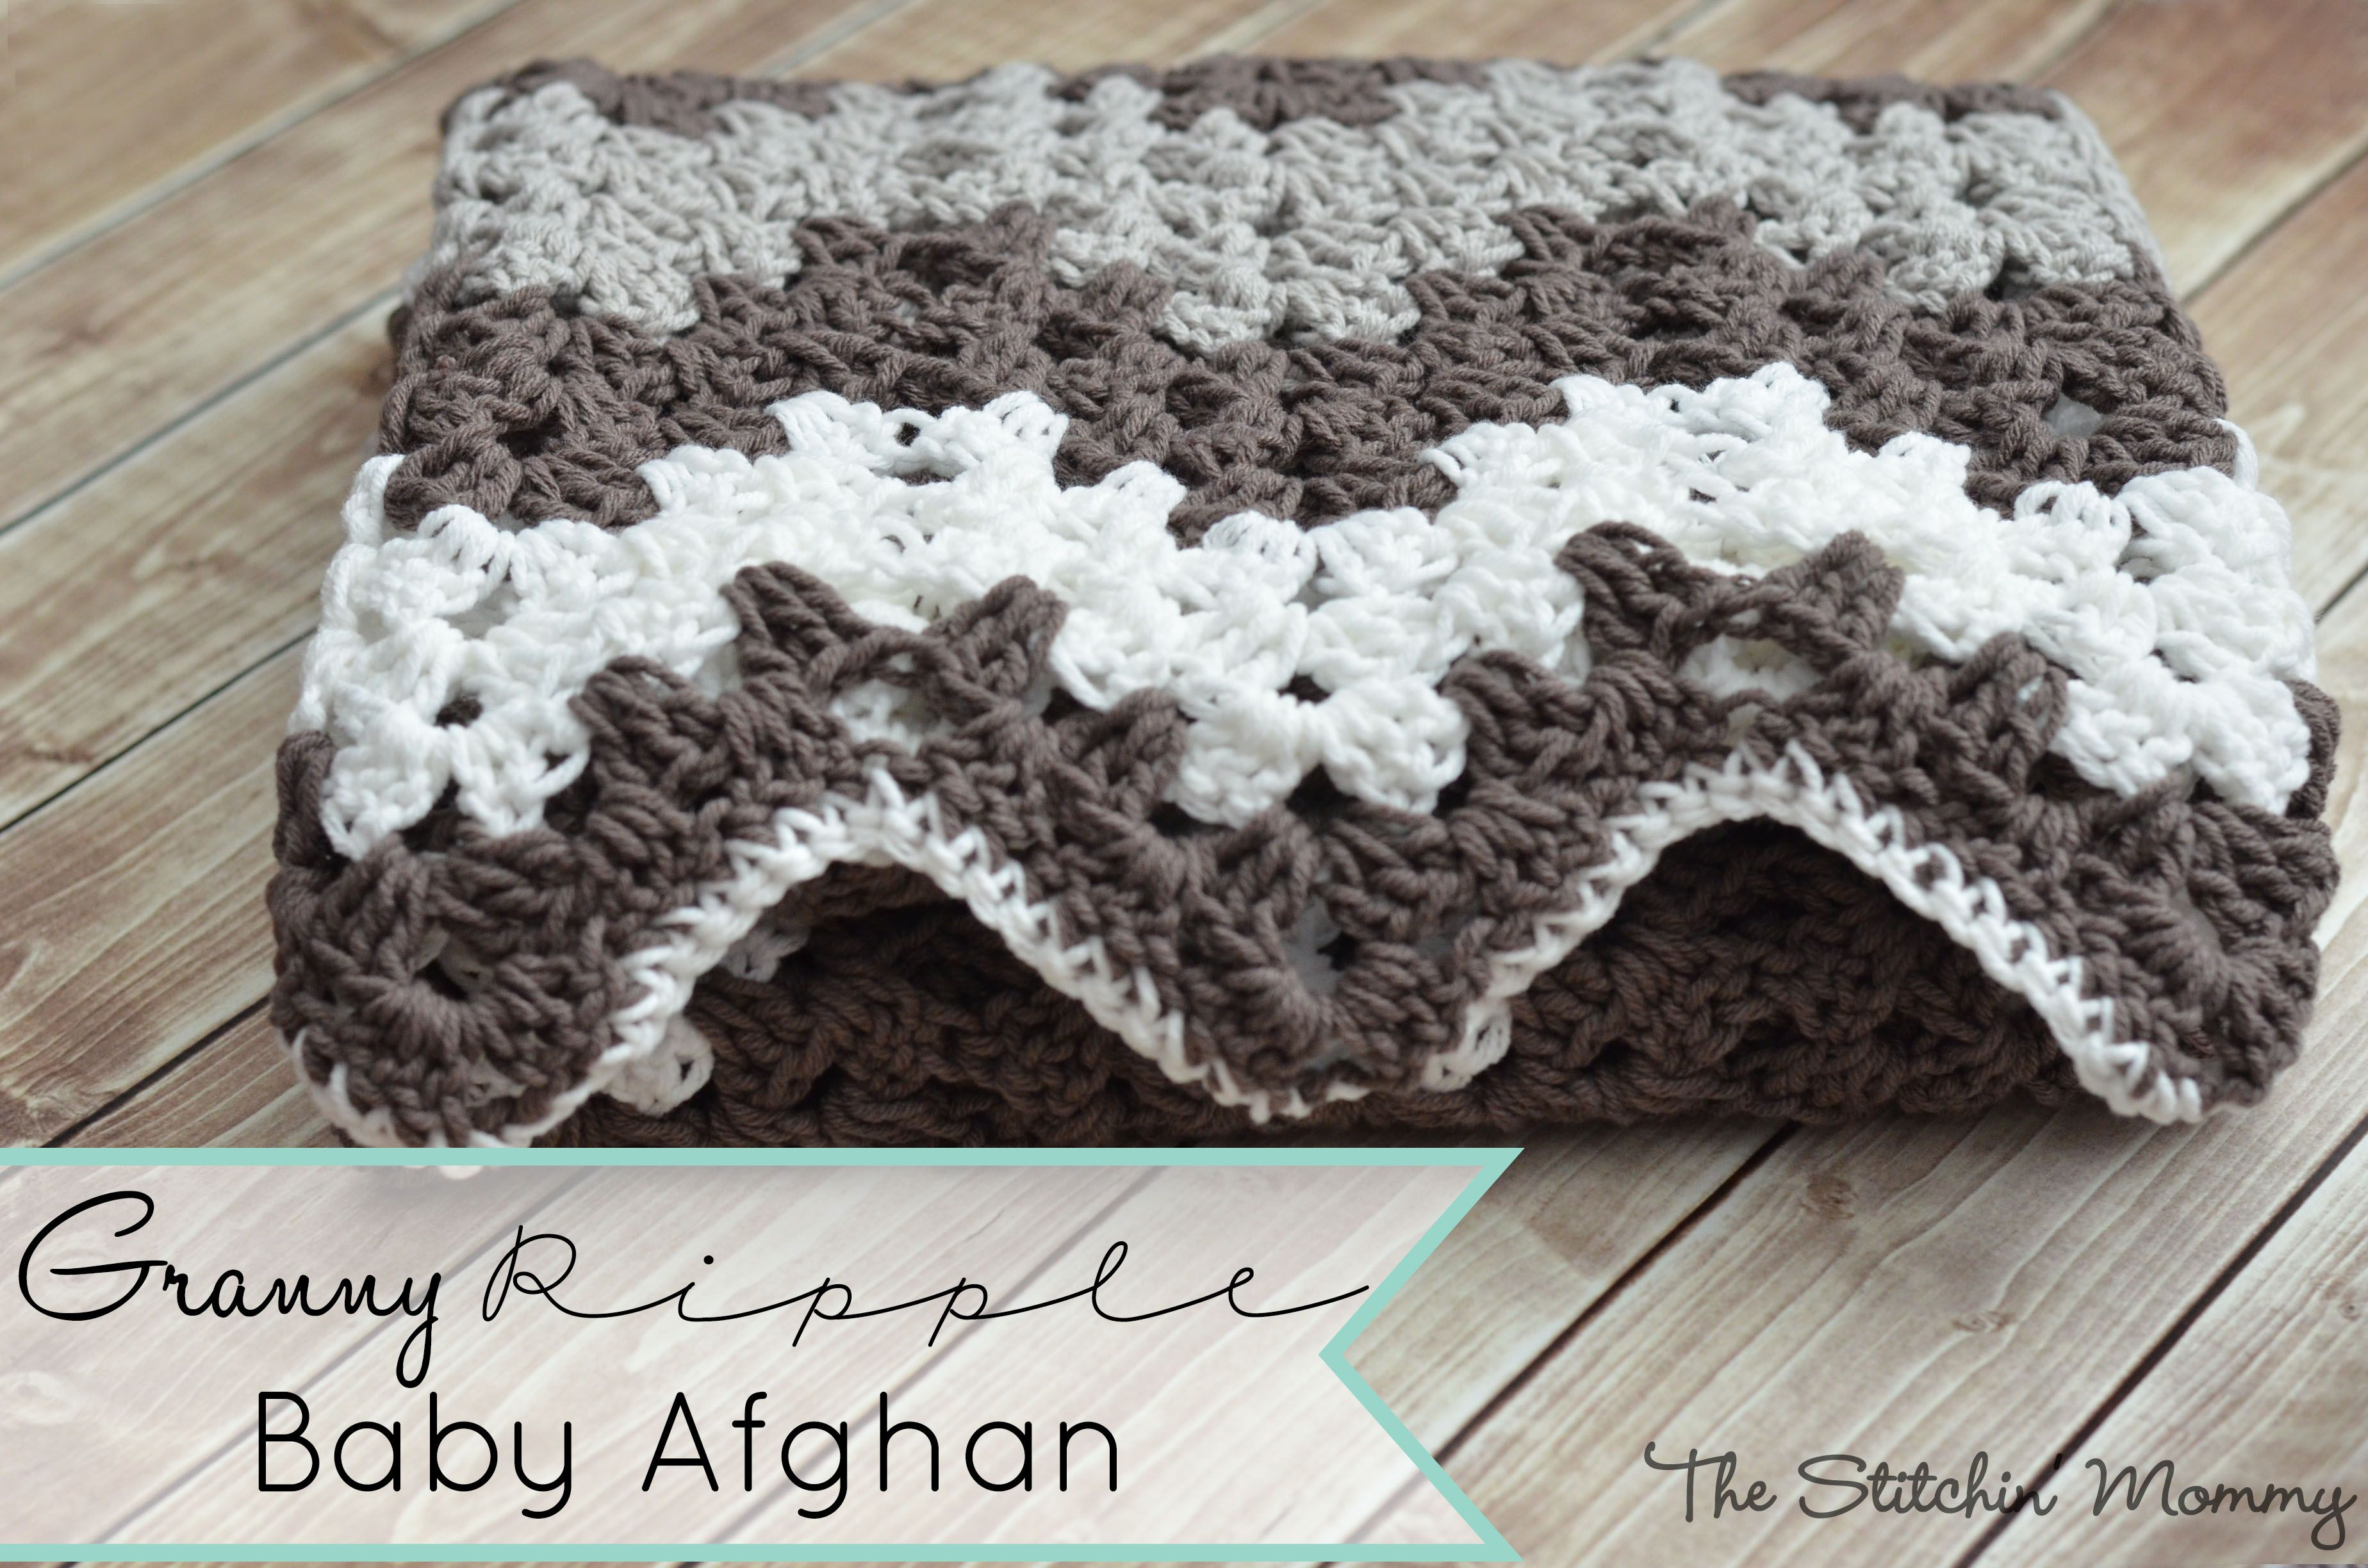 Granny ripple blanket crocheted afghans afghans and crochet granny ripple baby afghan thestitchinmommy crochet afghan baby bankloansurffo Gallery